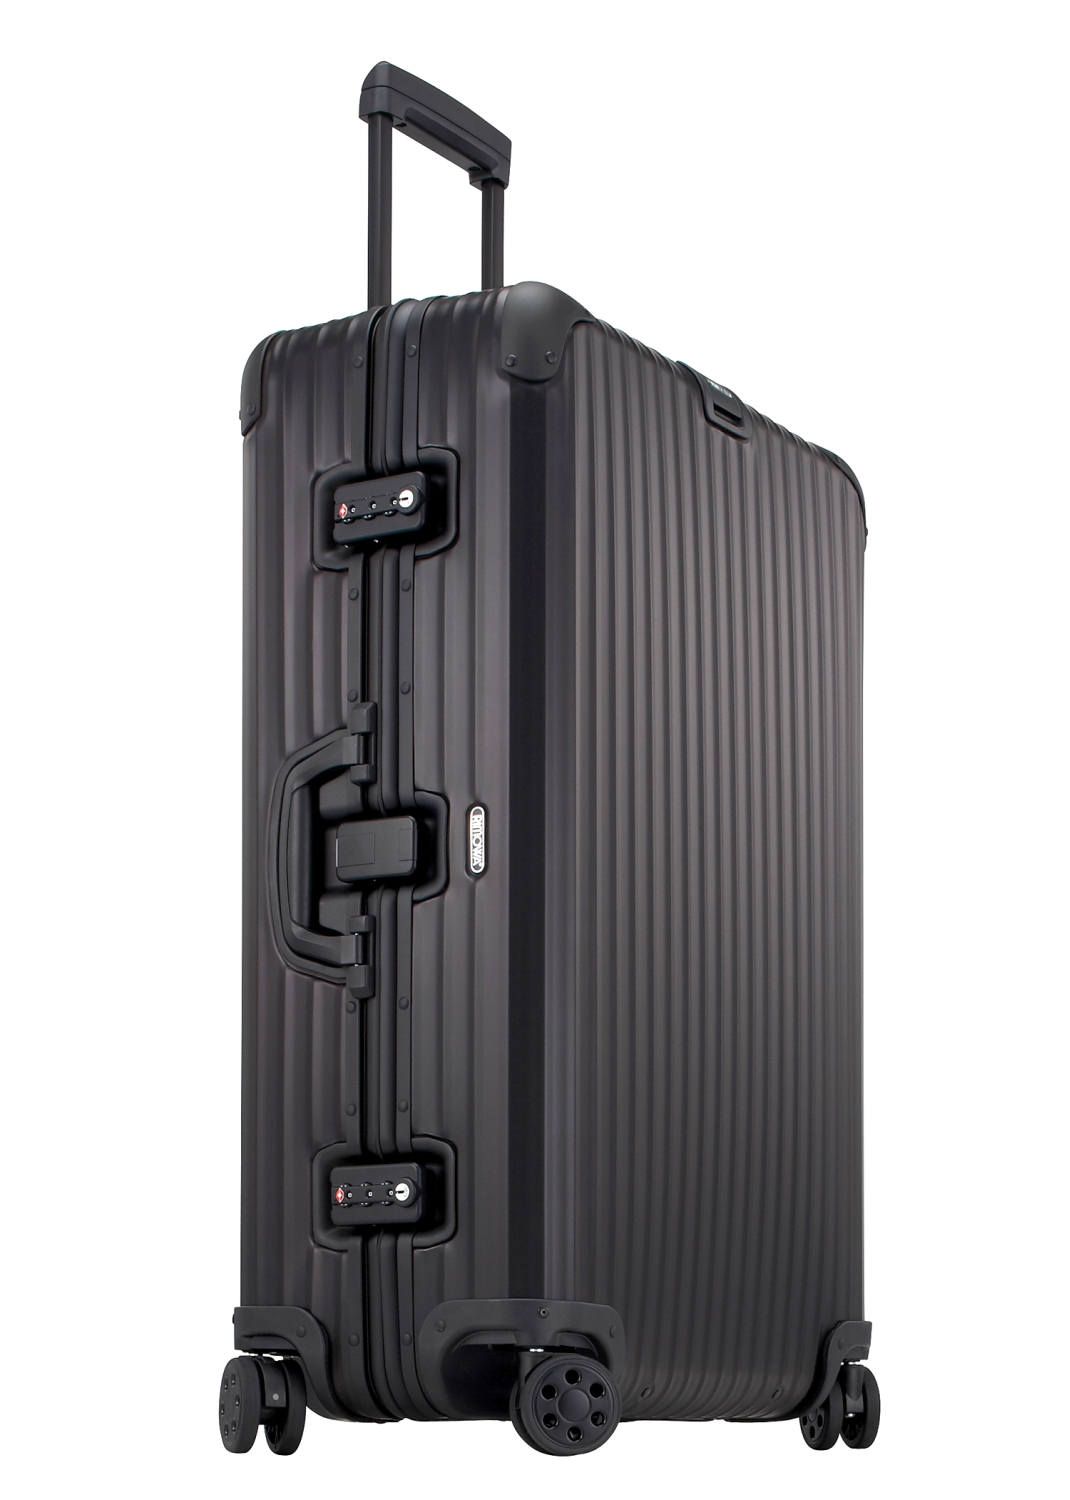 rimowa topas stealth multiwheel 73 ng kofferexpress 24. Black Bedroom Furniture Sets. Home Design Ideas